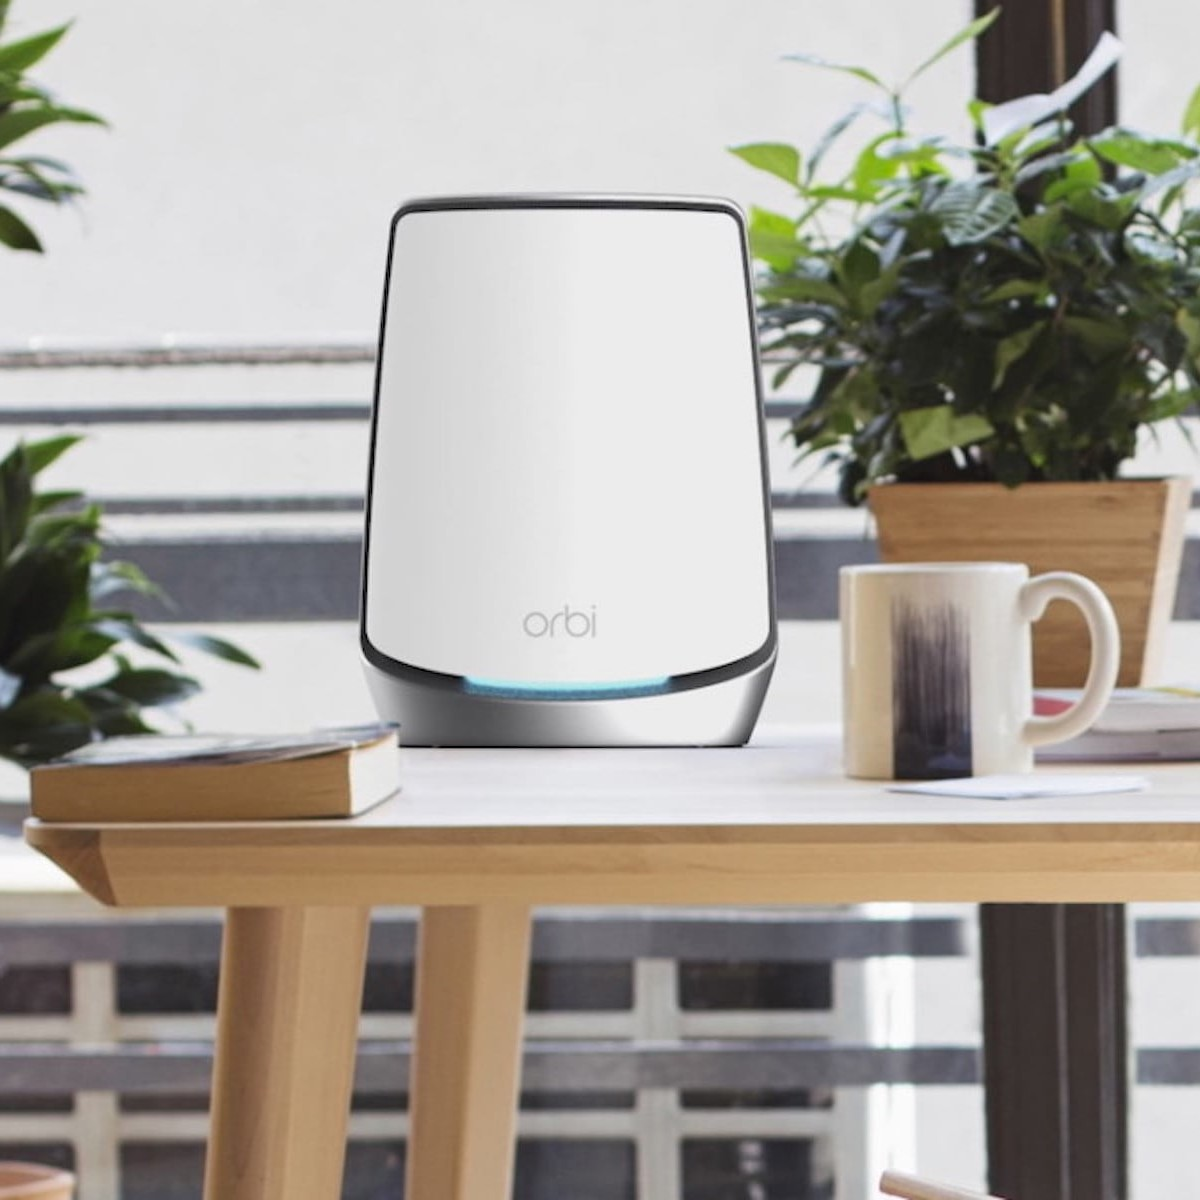 Must-have Home Office Gadgets That Are Actually Useful